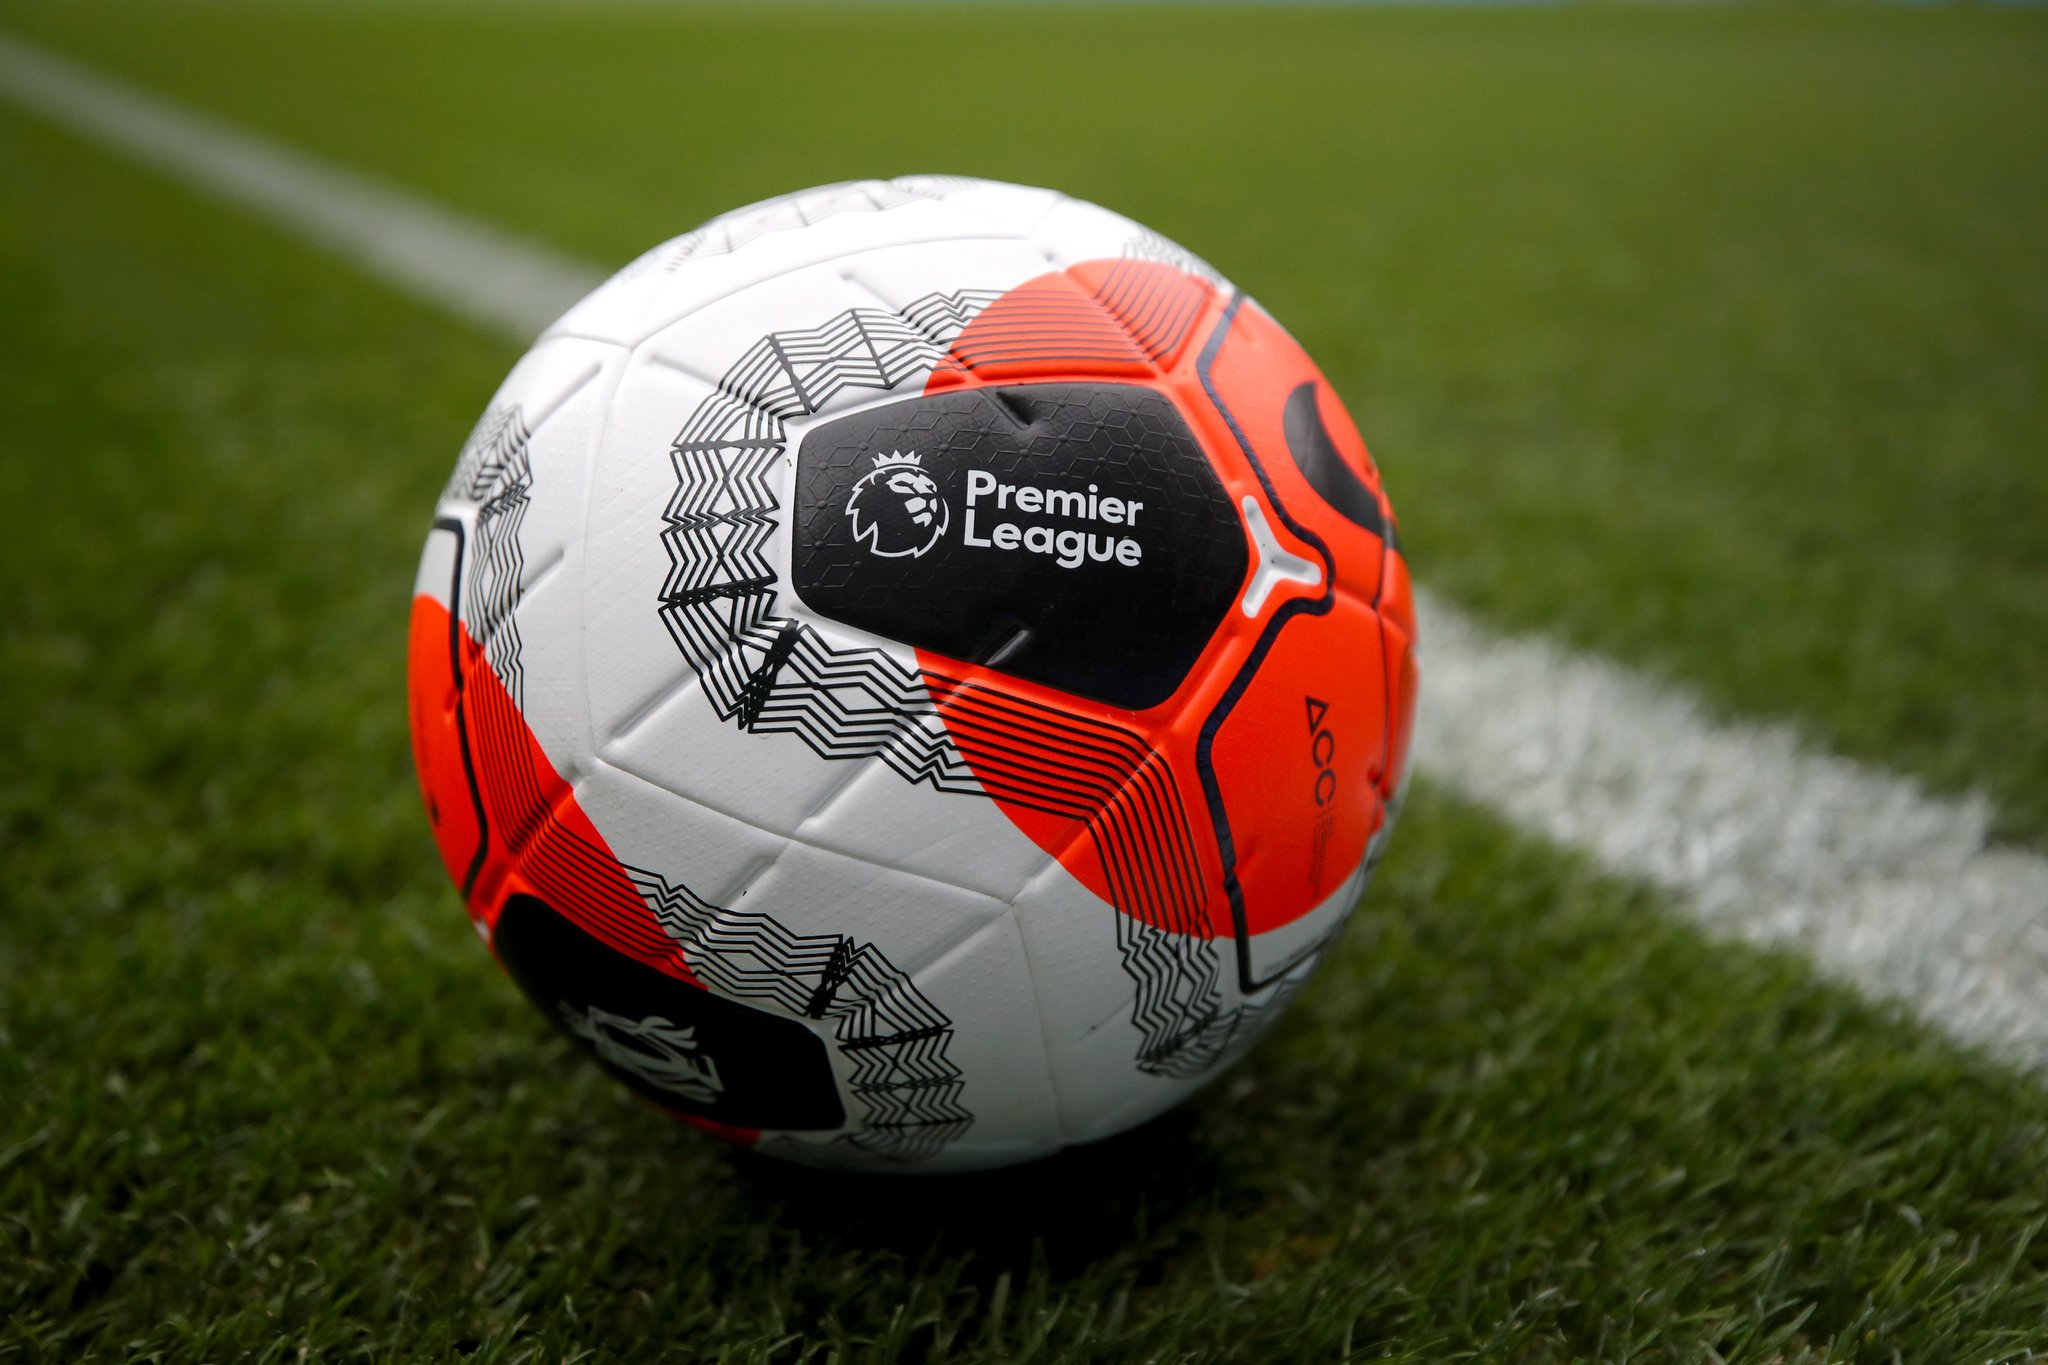 Six positives in Premier League Covid-19 tests